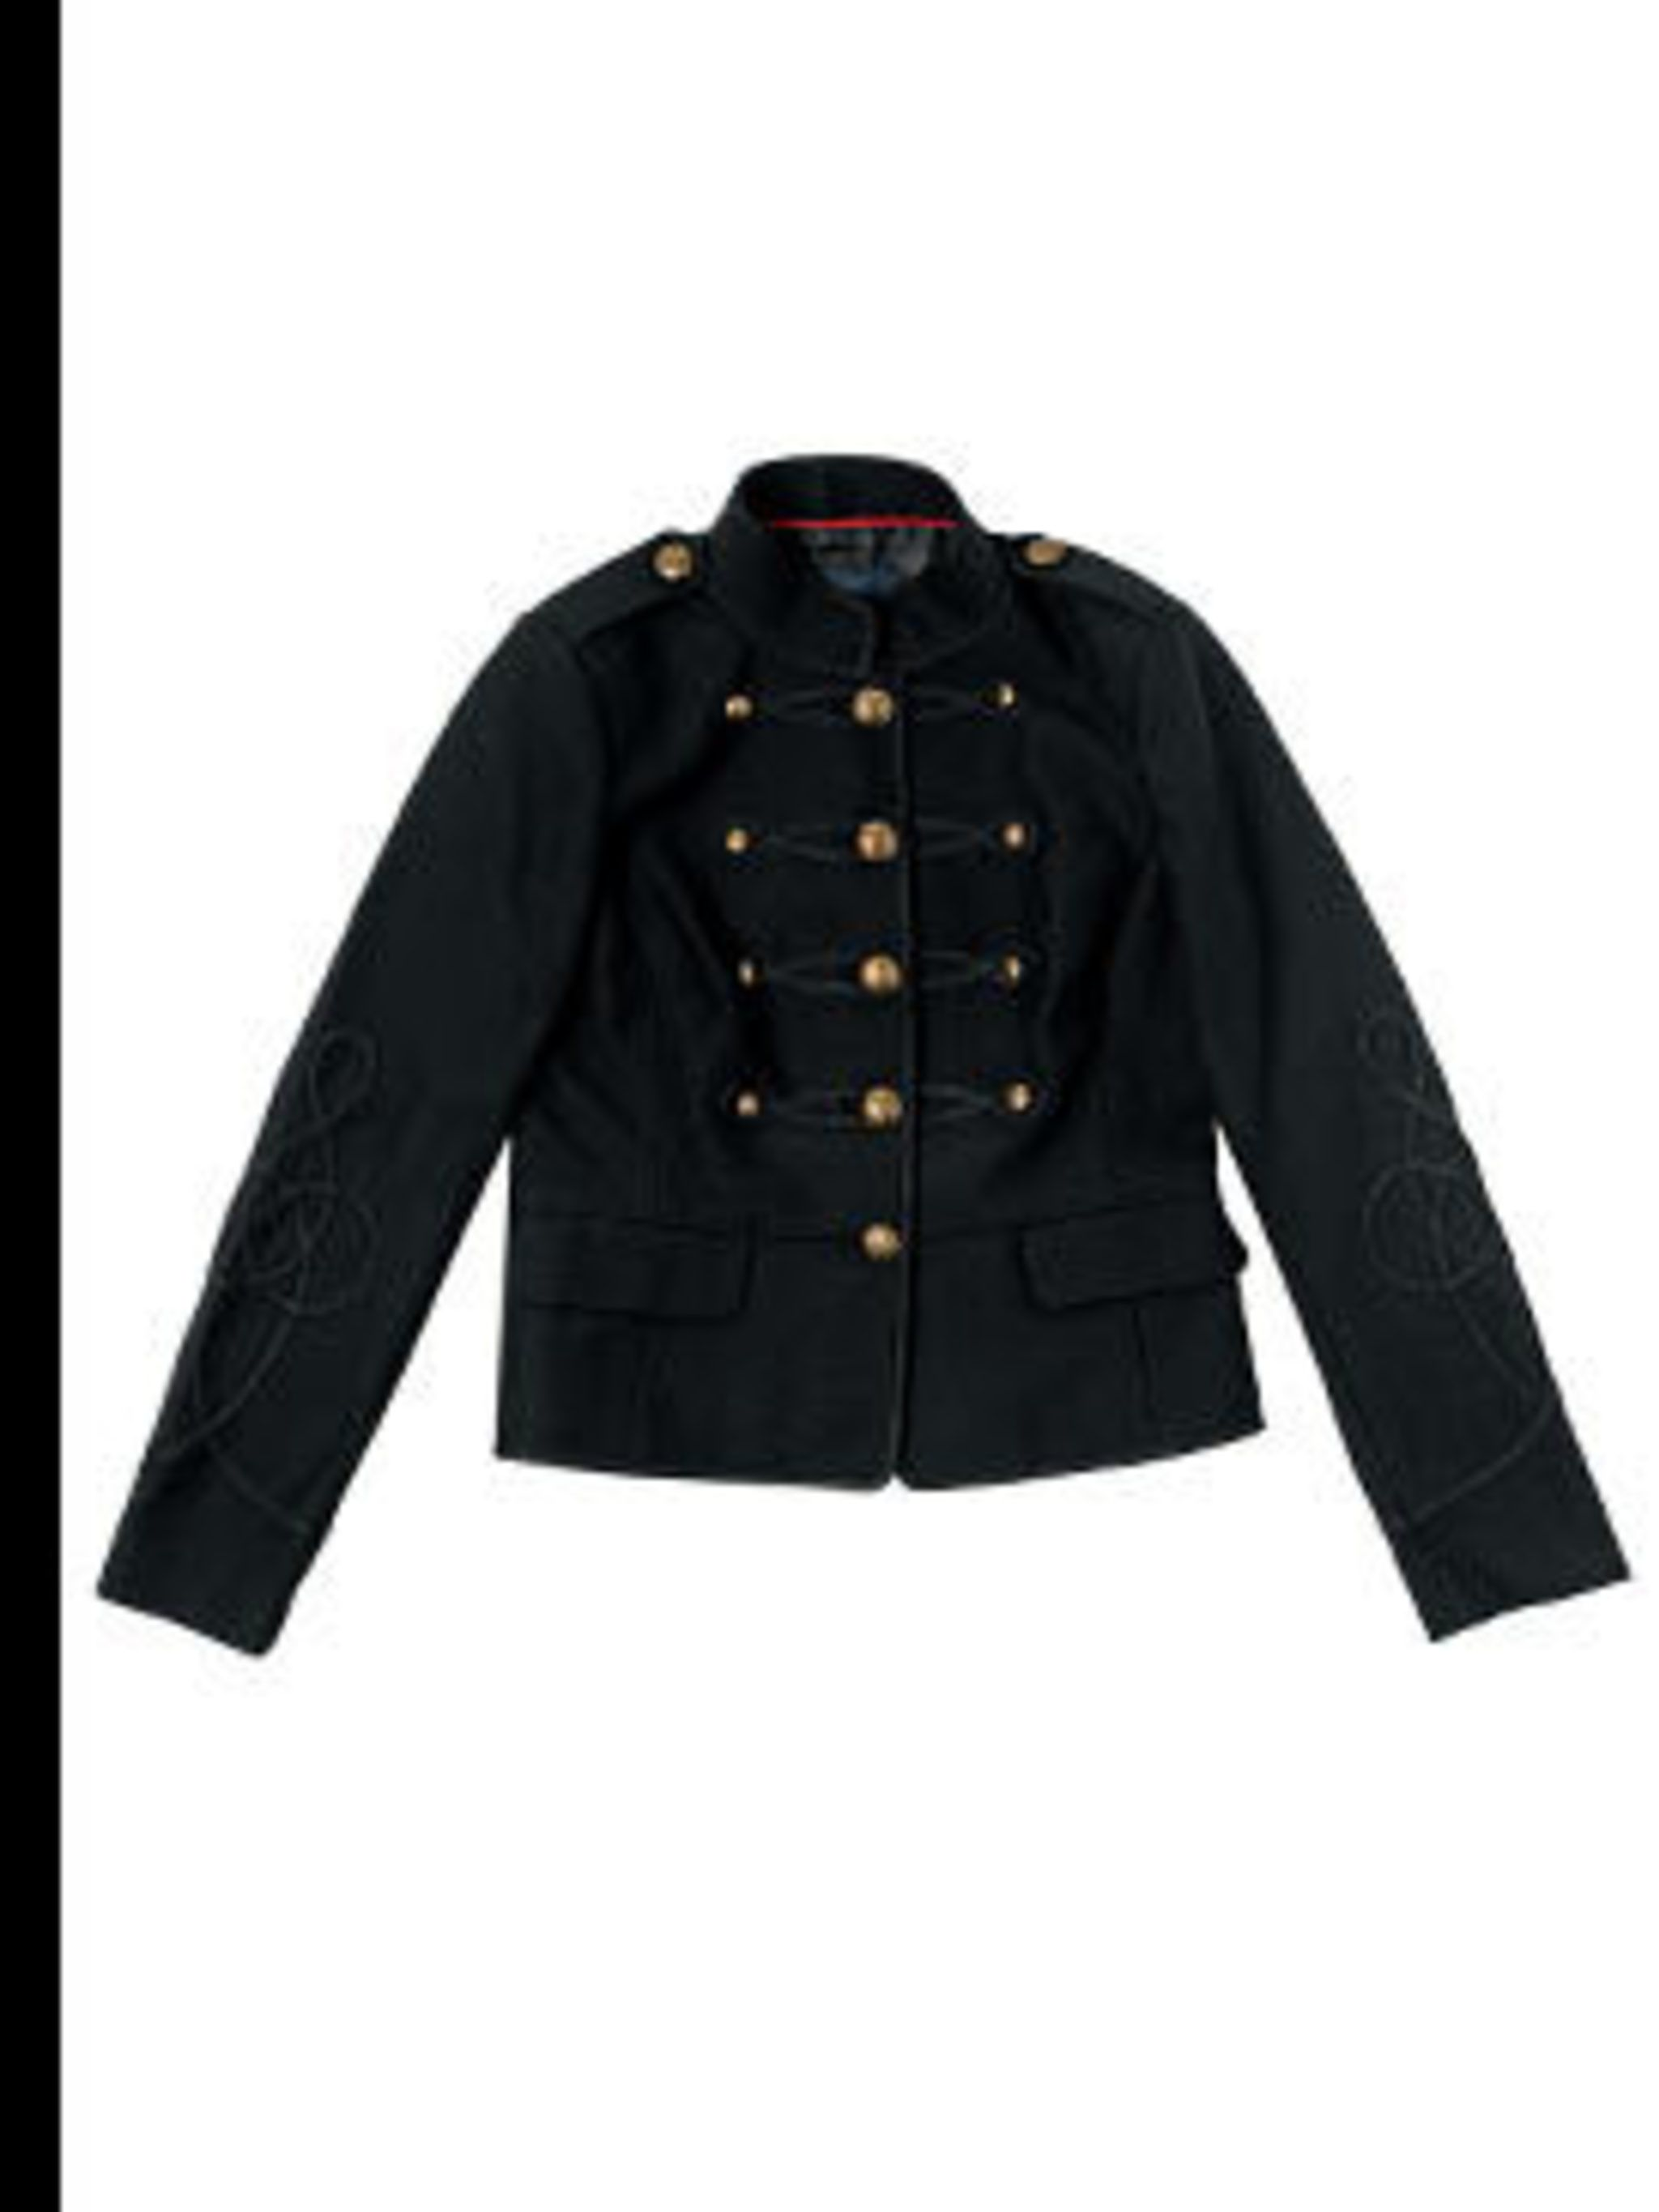 <p>Jacket, £110 by Banana Republic. For stockists call 020 7758 3550.</p>